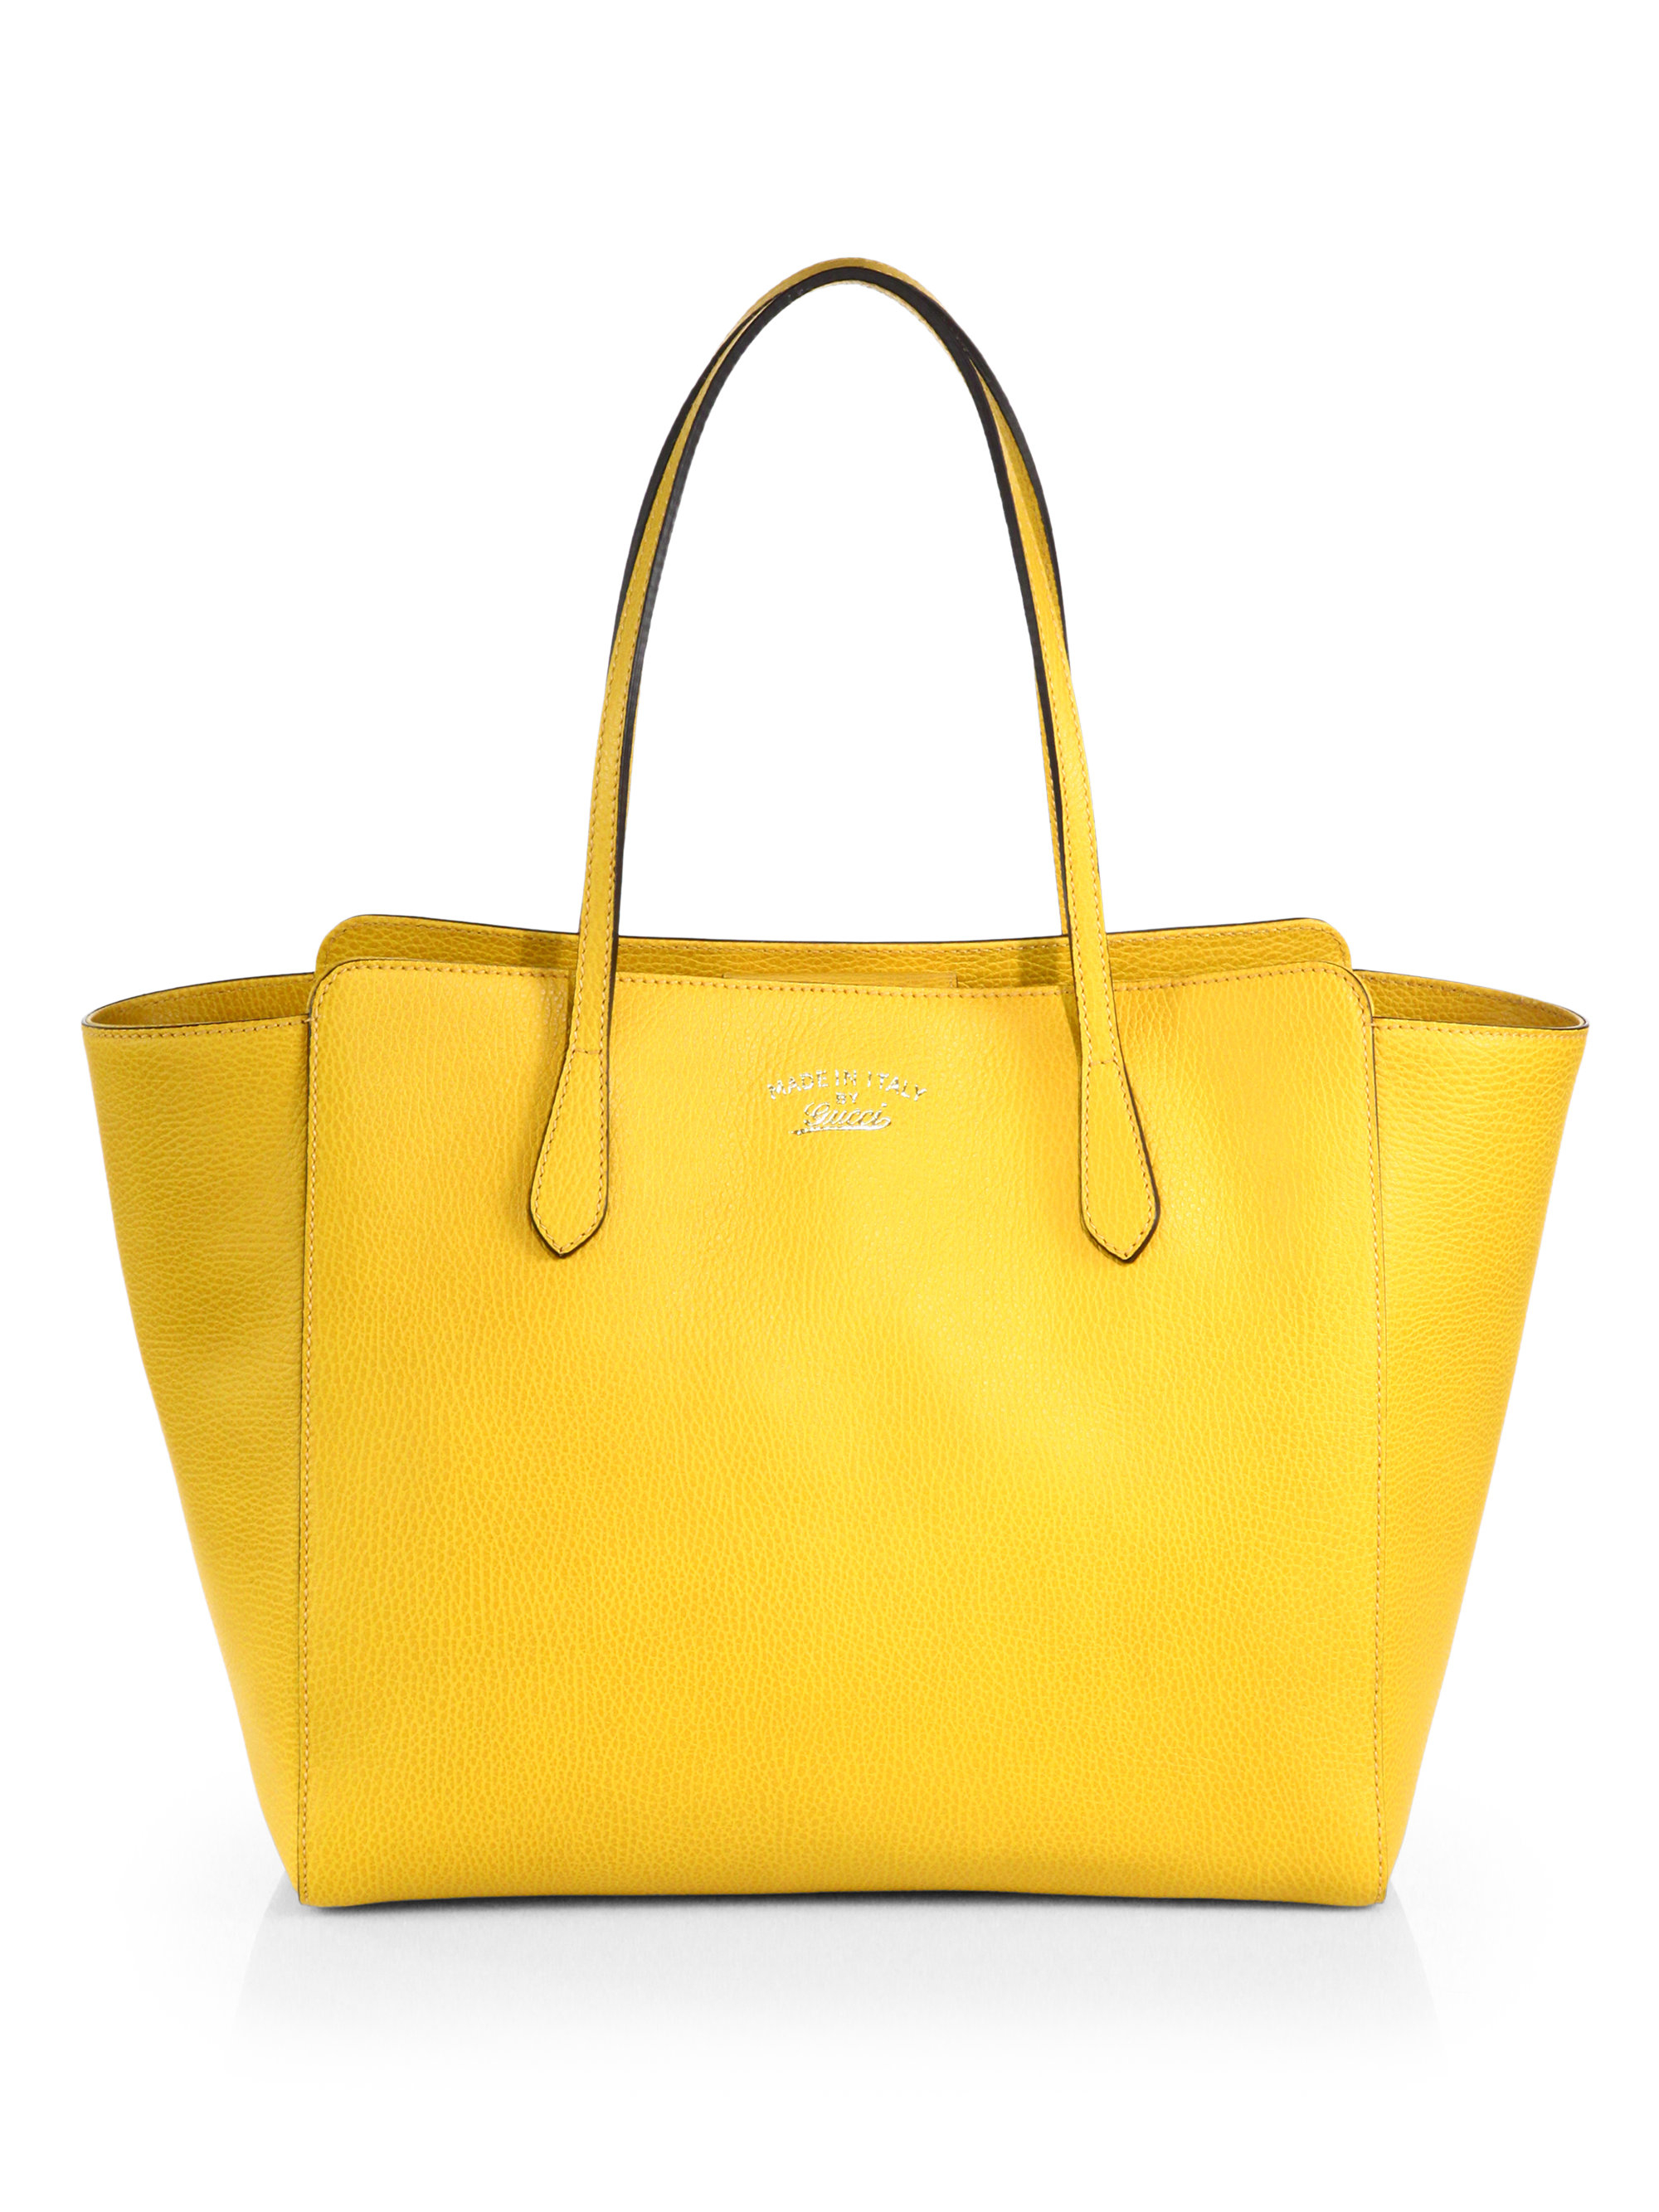 Lyst - Gucci Swing Large Leather Tote in Yellow